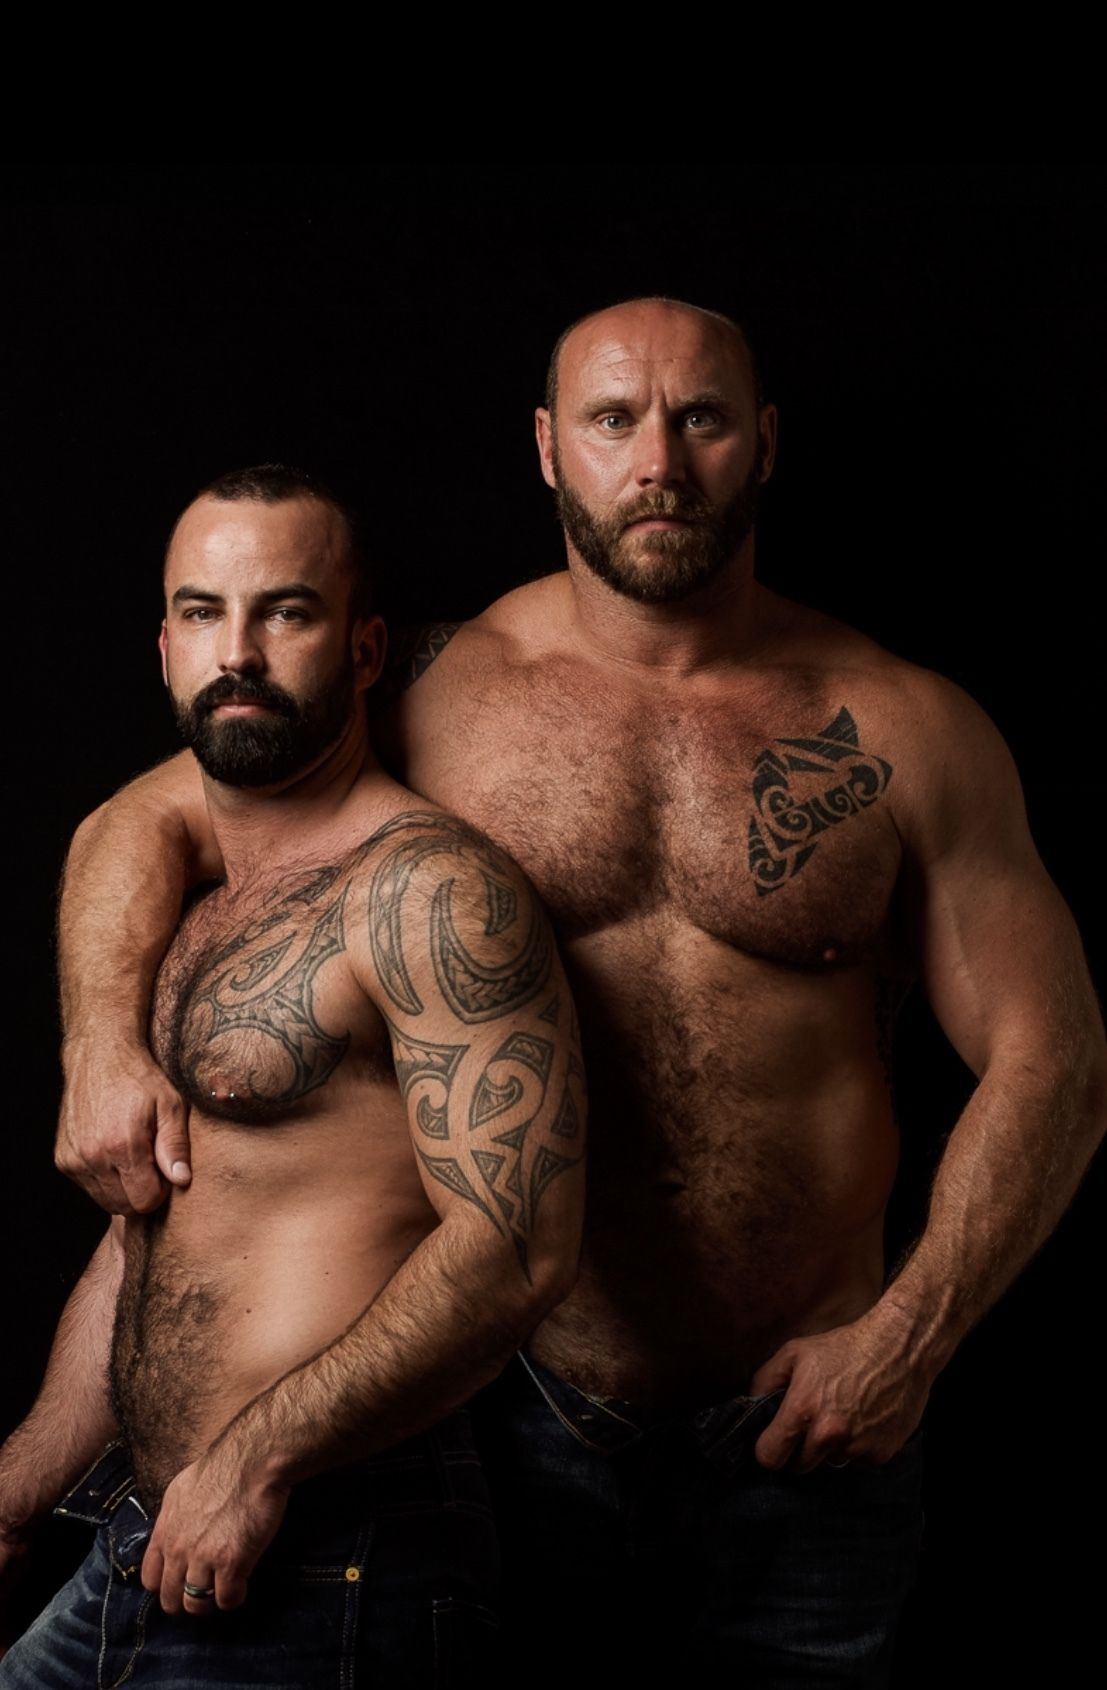 Muscle Bear Gallery nudes onlyfans onlyfans leaked